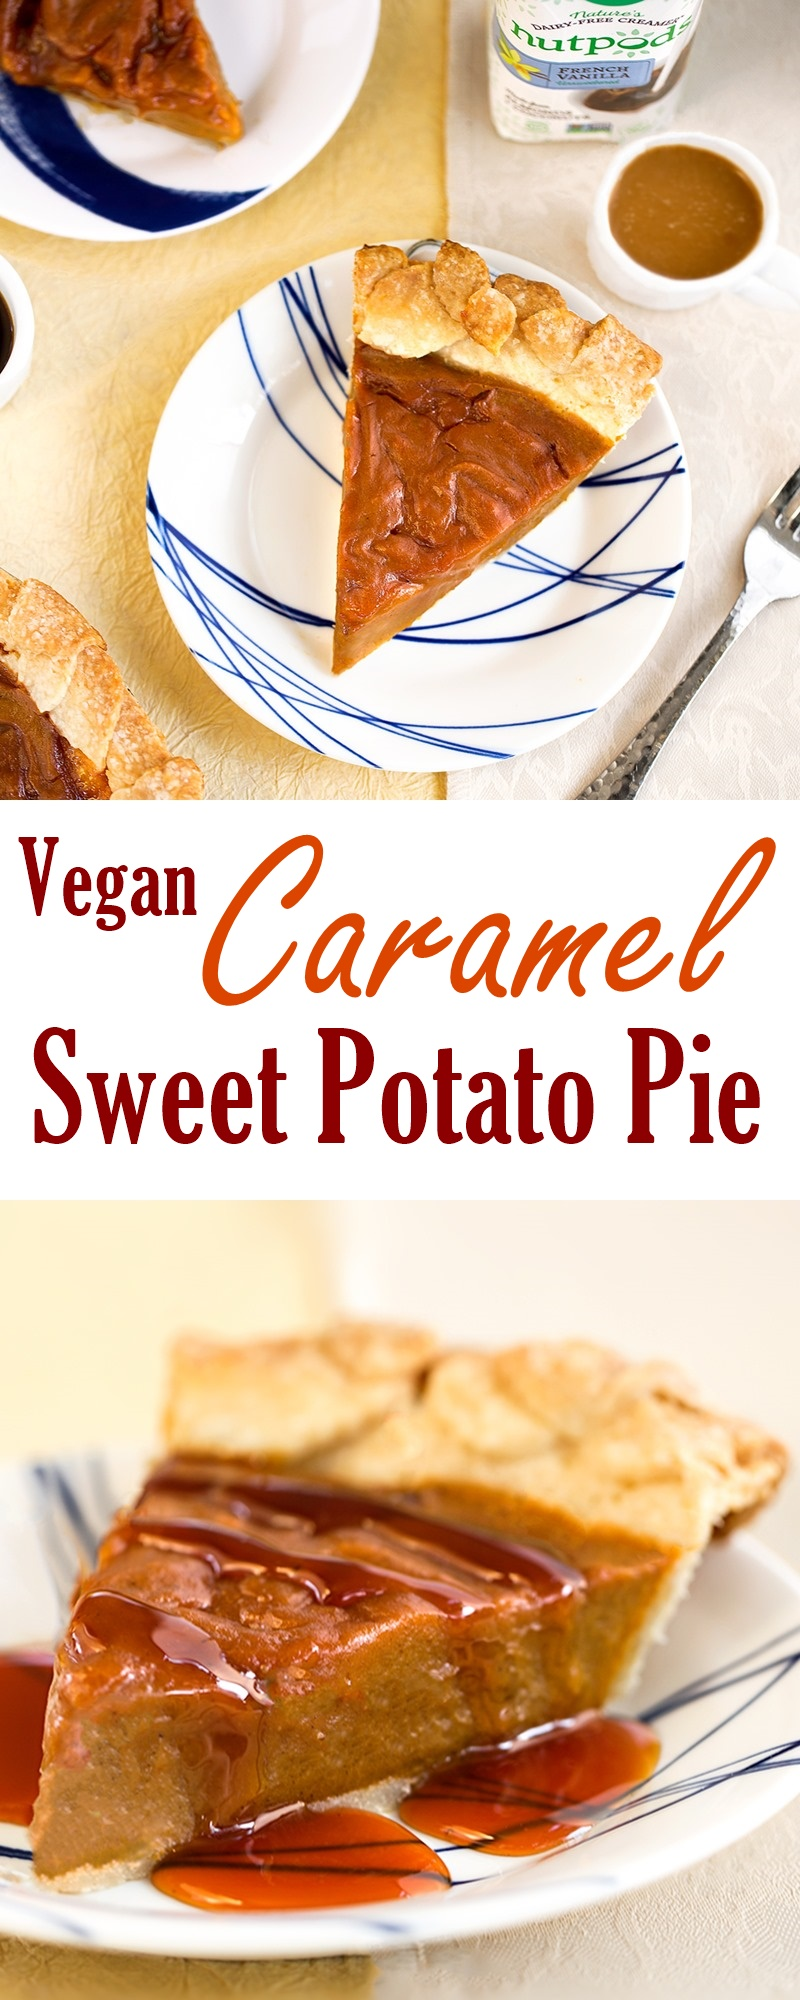 Vegan Caramel Sweet Potato Pie Recipe